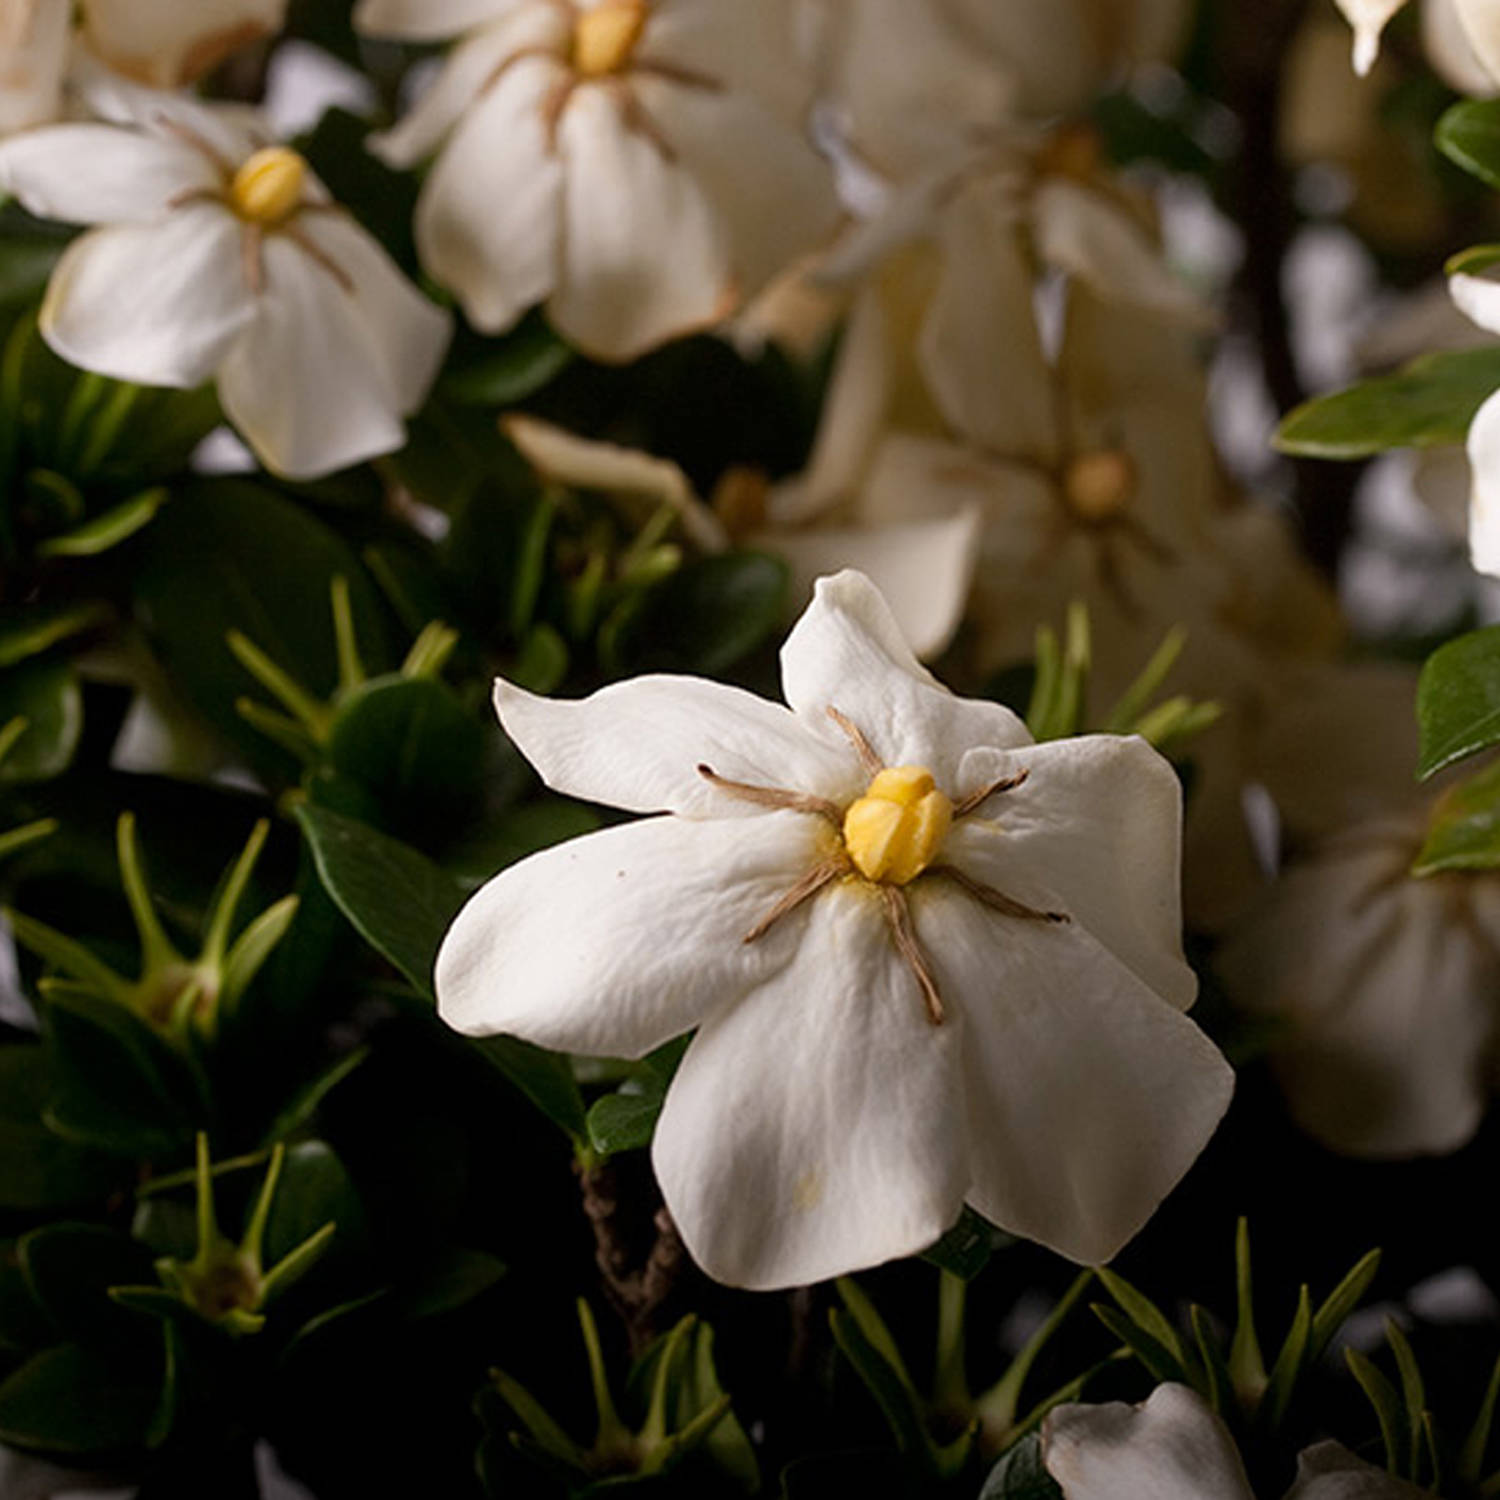 Scentamazing Gardenia - Southern Living Plant Collection – Garden Shrub